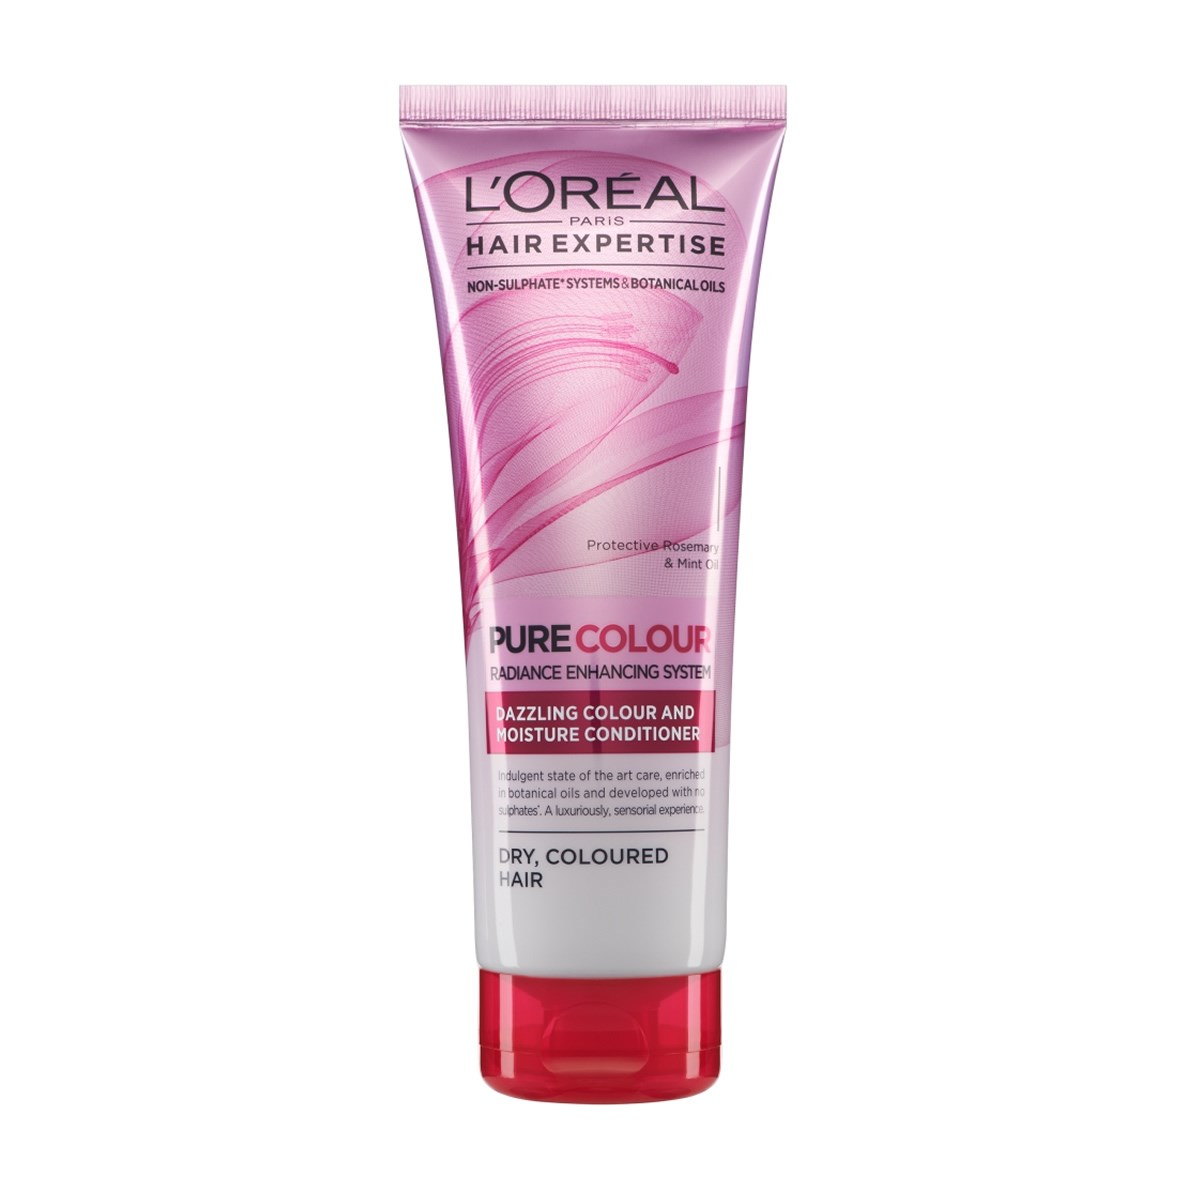 L'Oreal Paris Hair Expertise Pure Colour Dazzling Colour and Moisture Conditioner